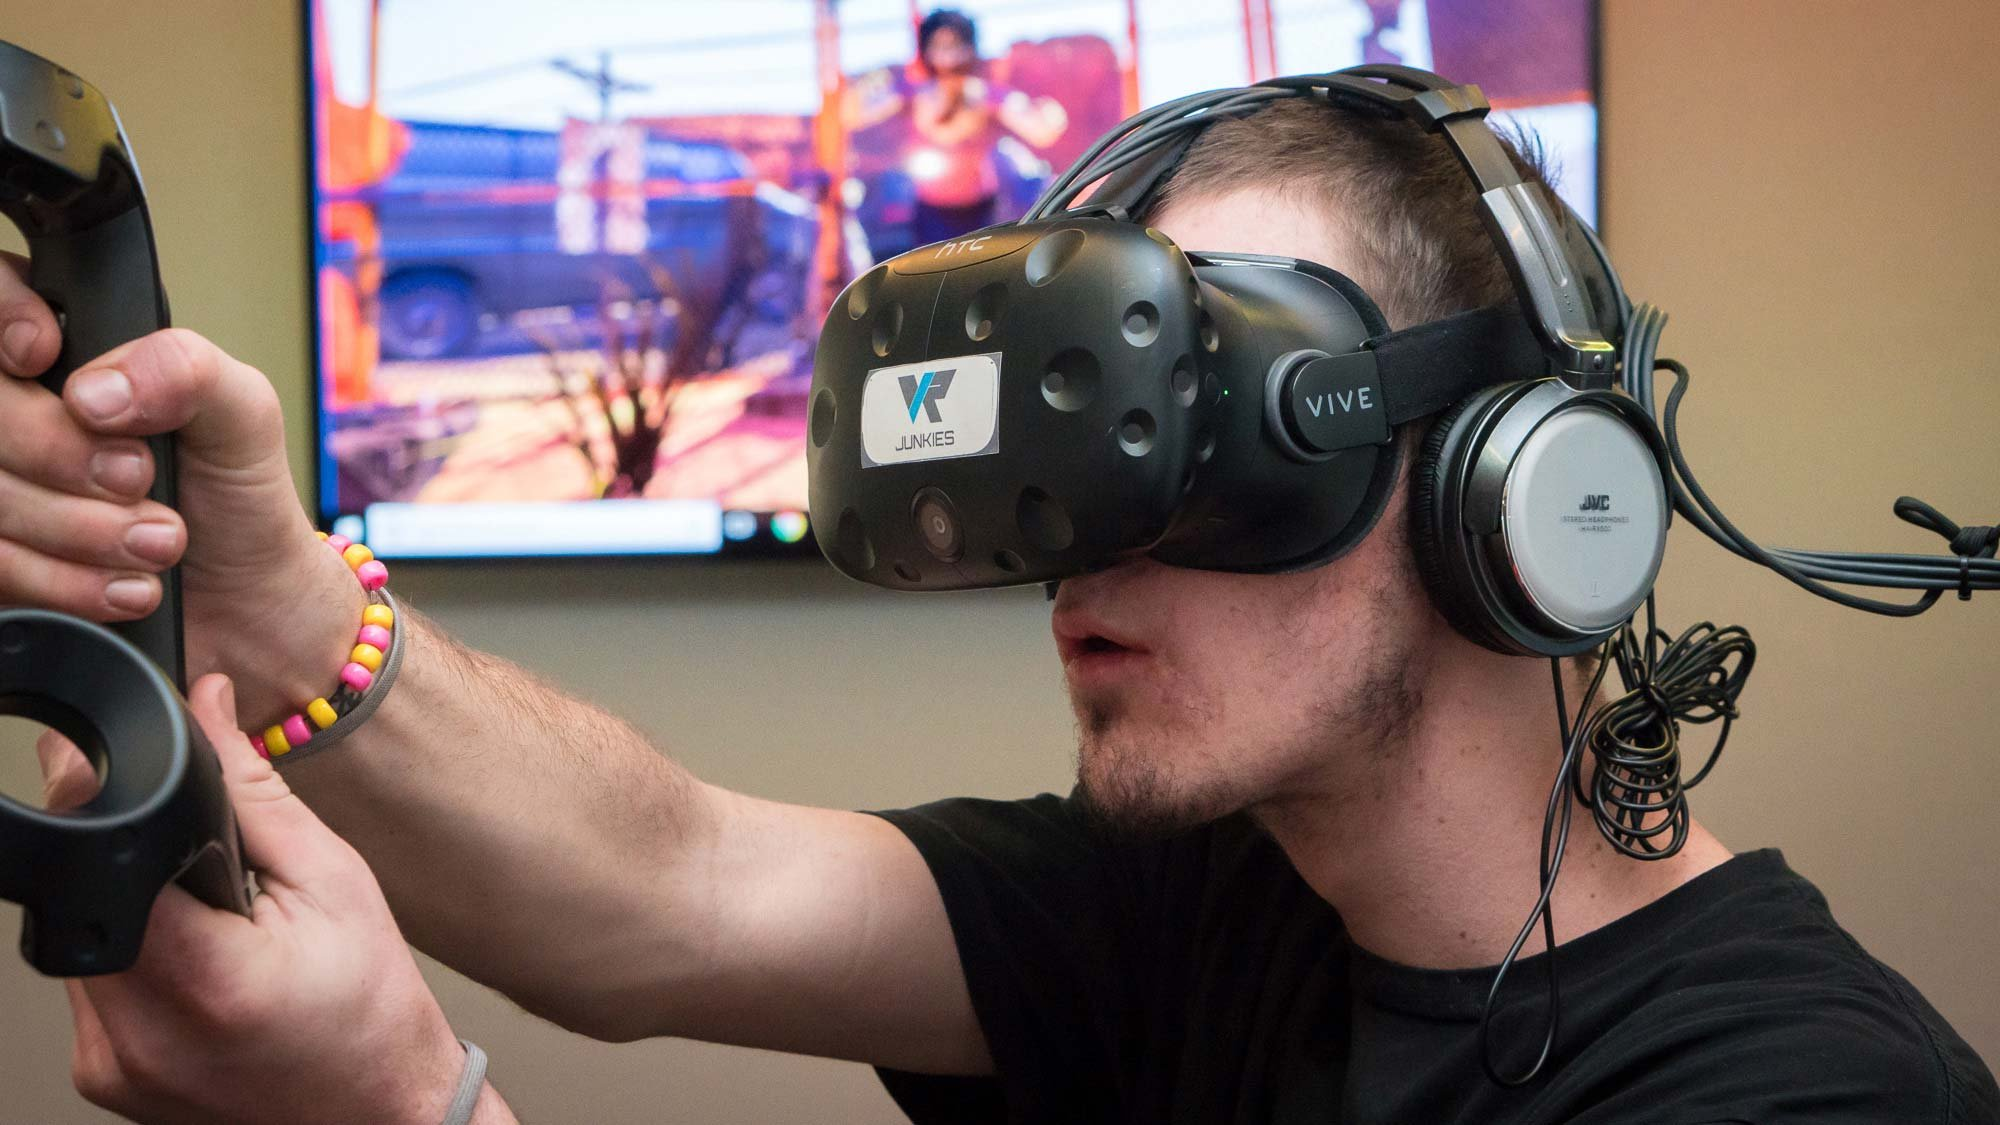 Tyler Powell got to play VR games that he previously had only played on a PC. (Source: Daria Kadovik/Cronkite News)